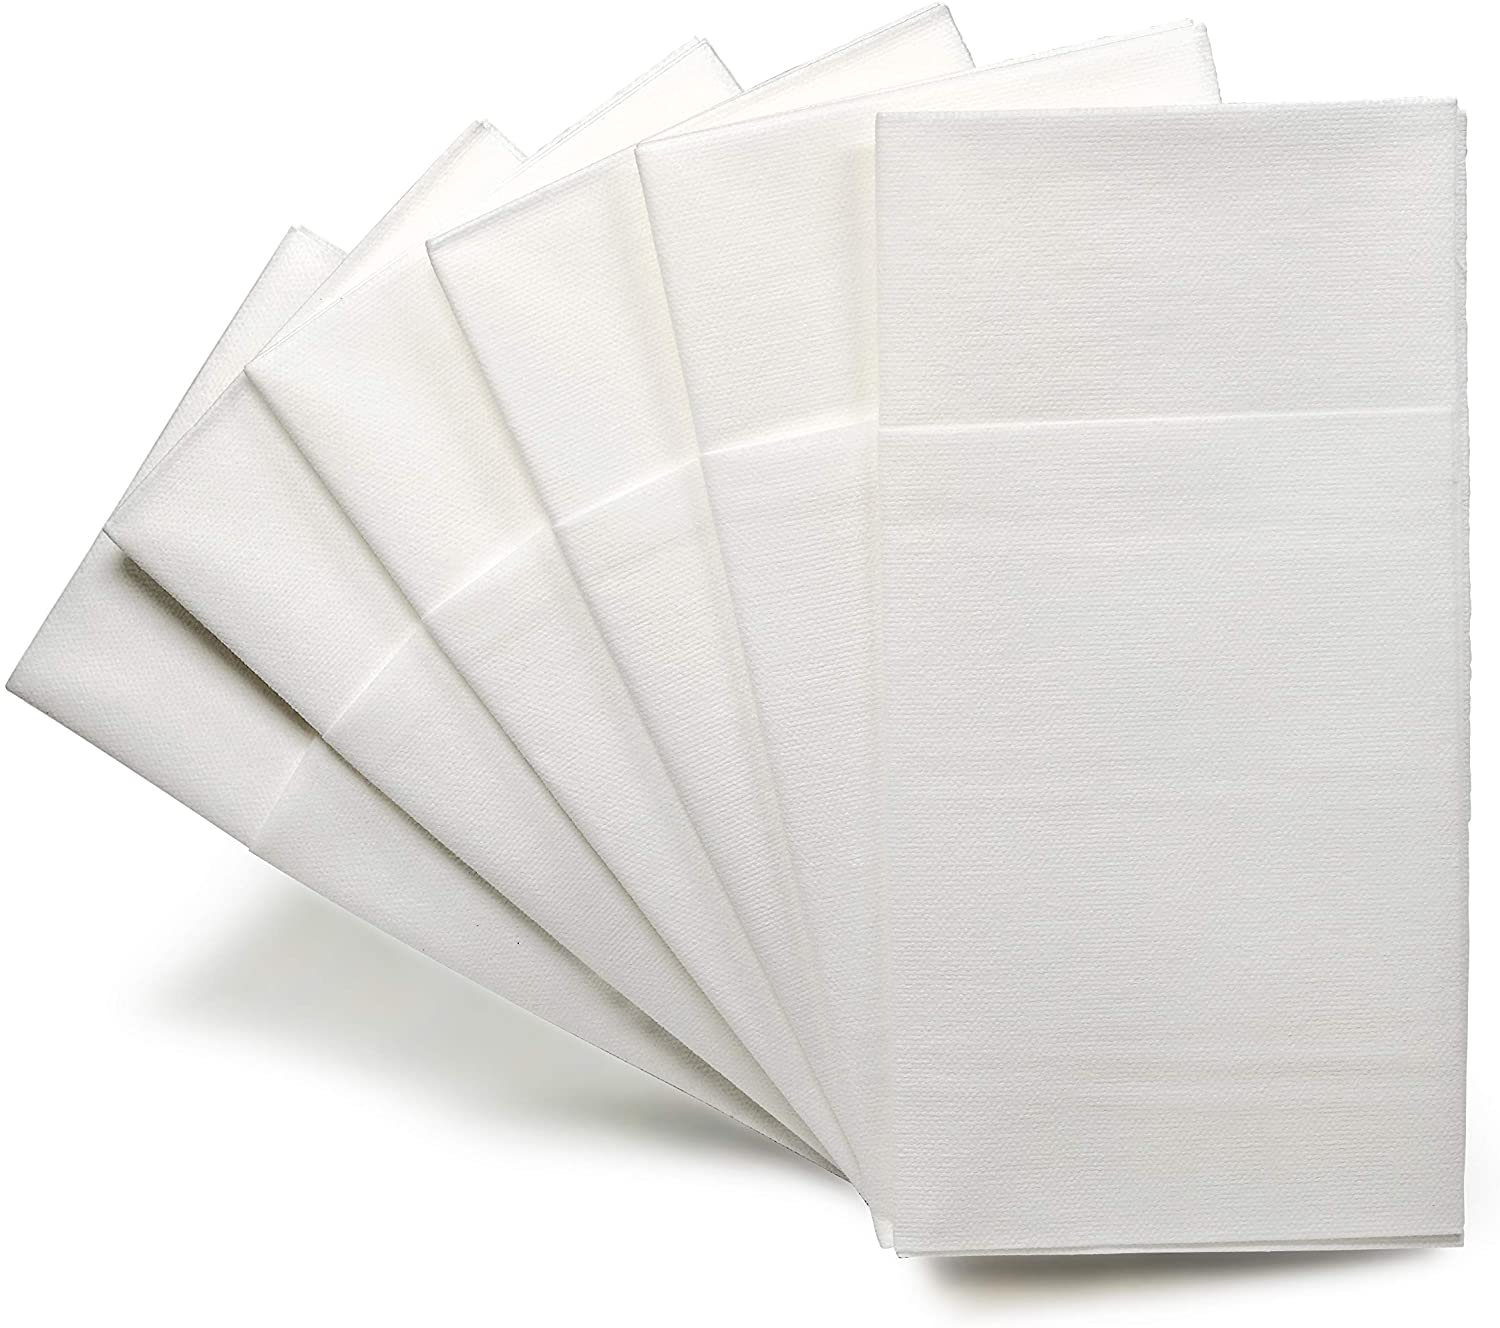 """"""" OCCASIONS"""" Wedding Party Linen Feel White Dinner Superior Quality Paper Napkins (240, Prefolded for Silverware)"""